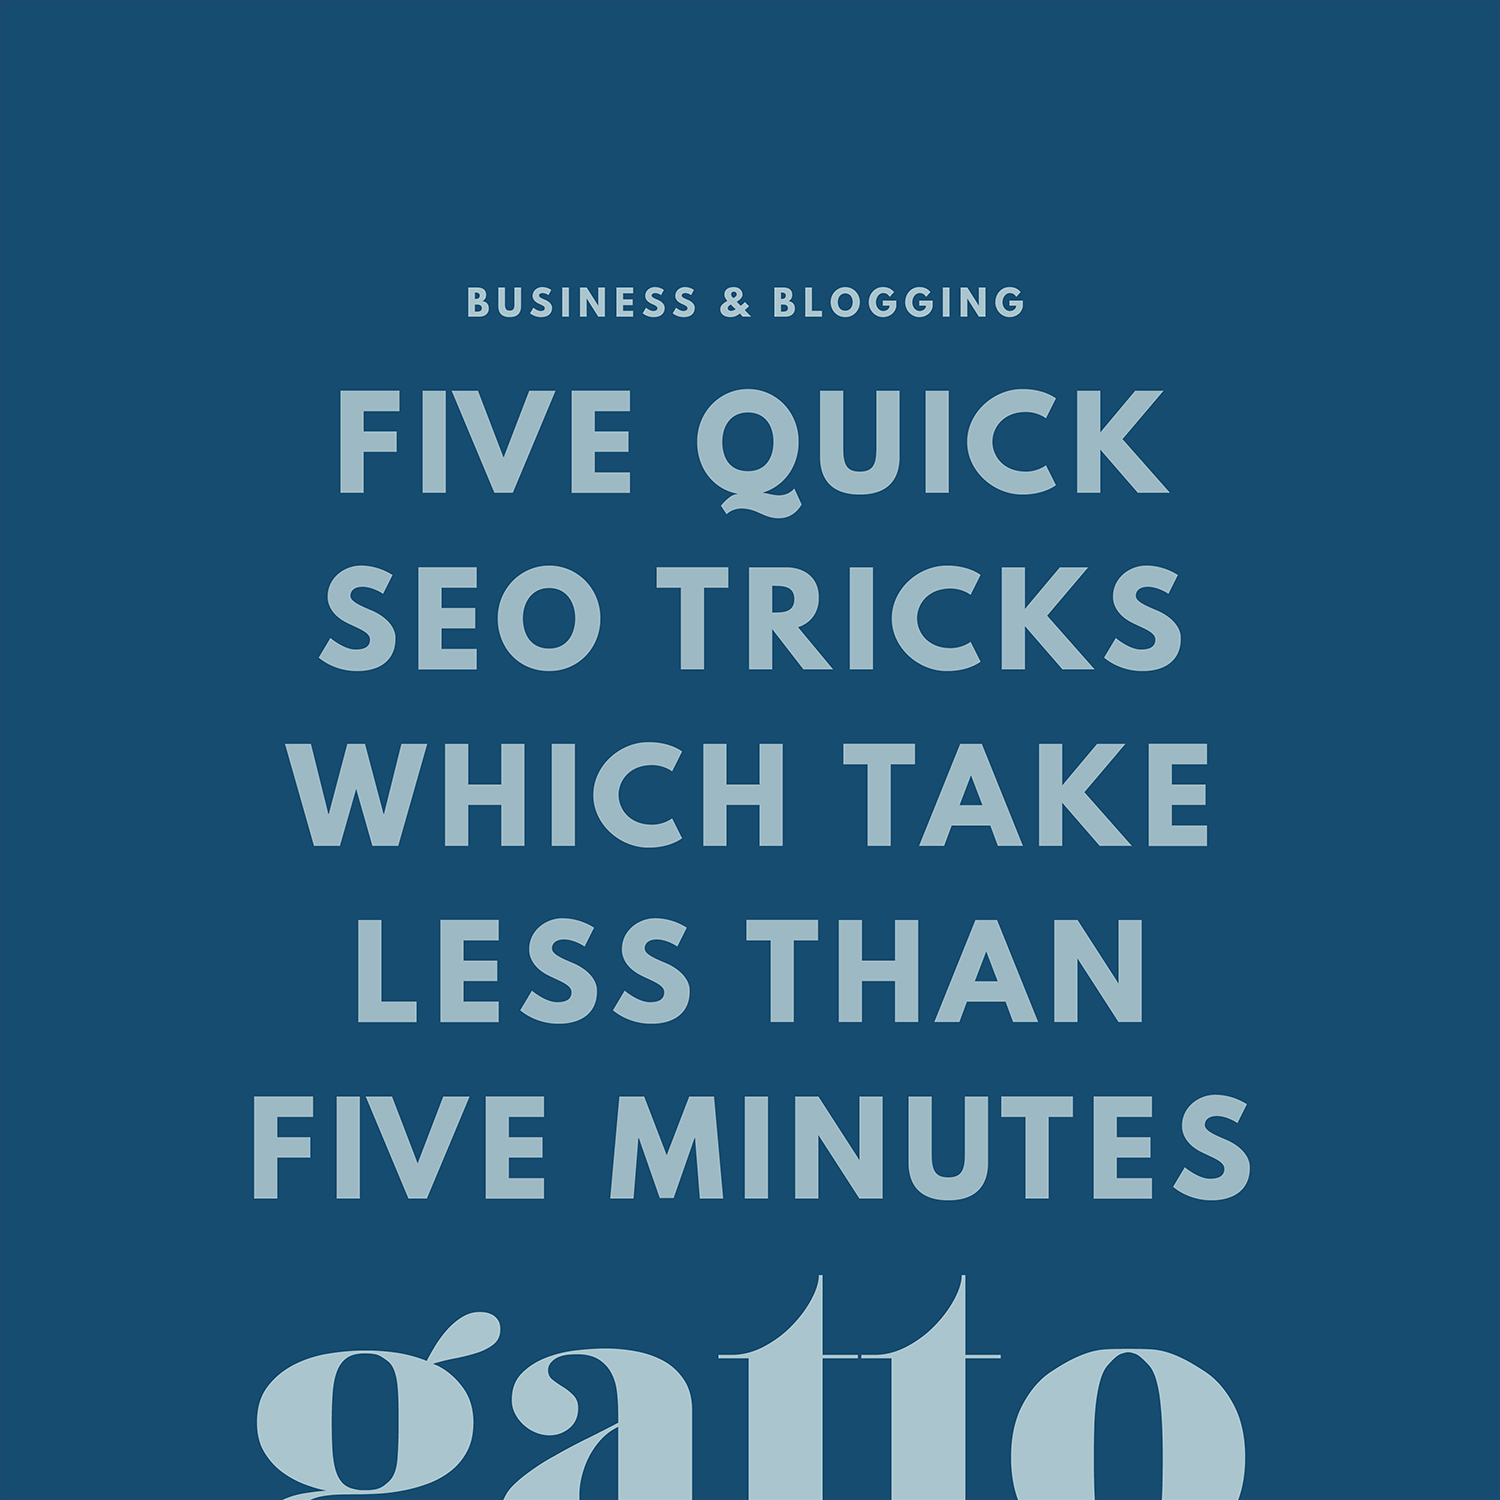 Quick SEO Tricks | Blogging Optimisation | Creative Business | Branding & Design Studio